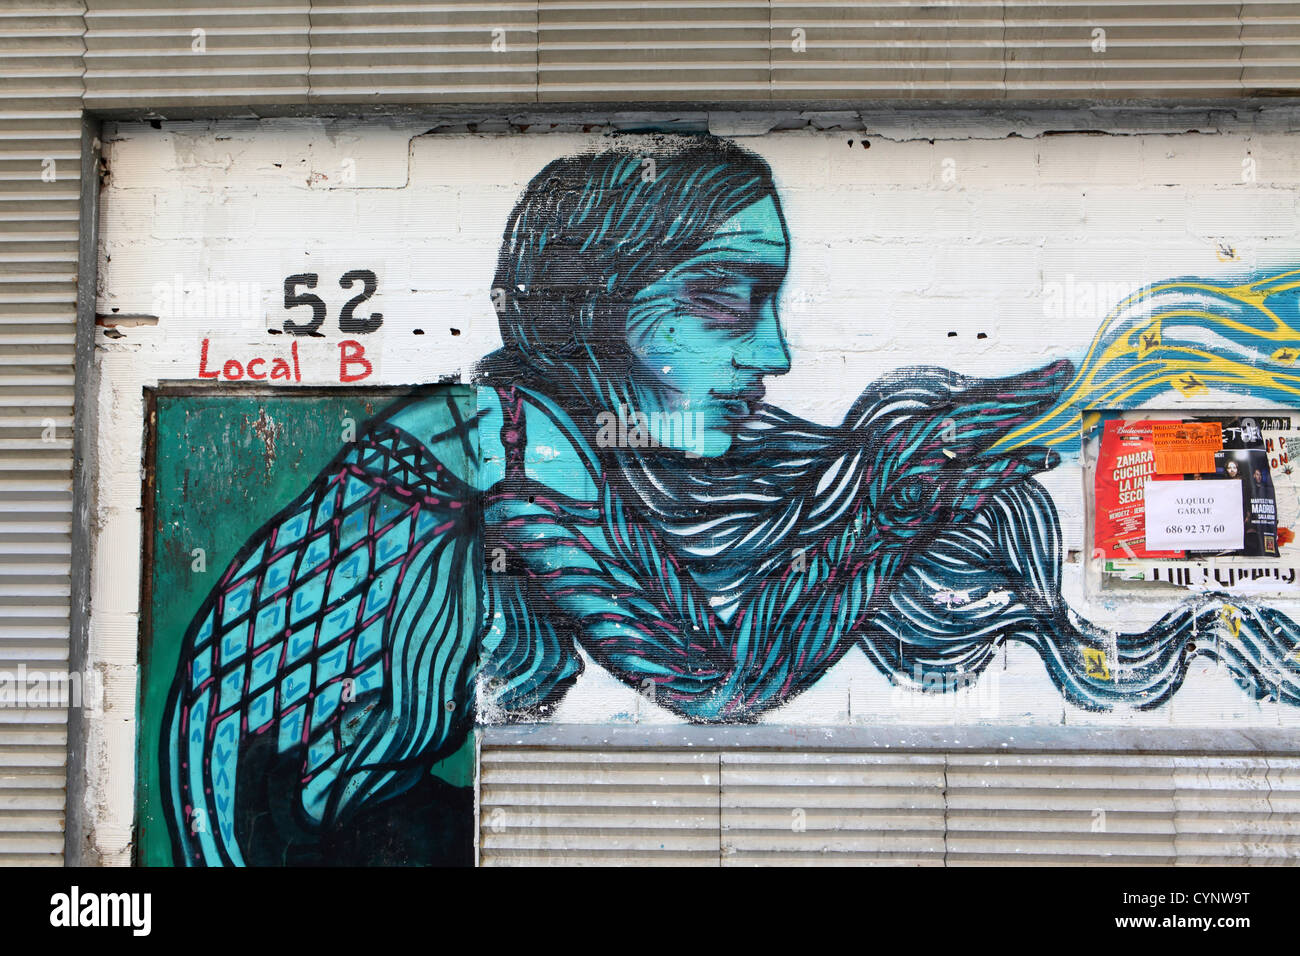 Graffiti wall painting - Street Art Graffiti Wall Painting Of Woman With Long Hair Self Expression Madrid Spain Espana